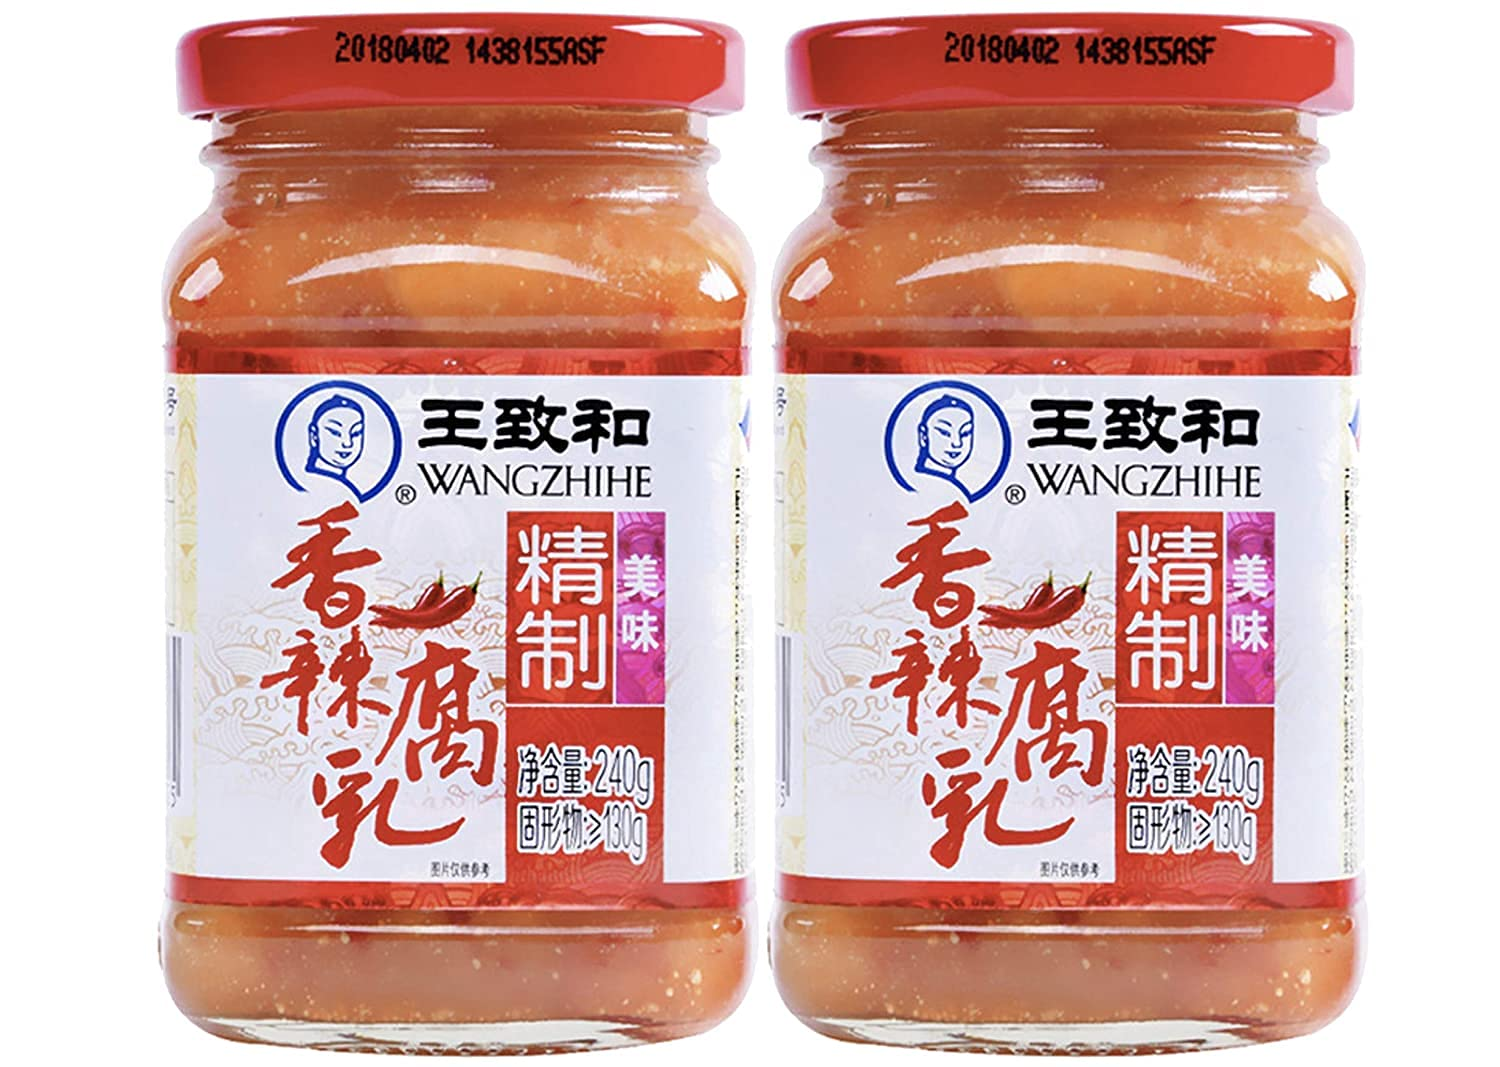 FREE MEASURING SPOON Atlanta Mall SET Don't miss the campaign PACK OF 2 WANGZHIHE FERMENTED BEAN -